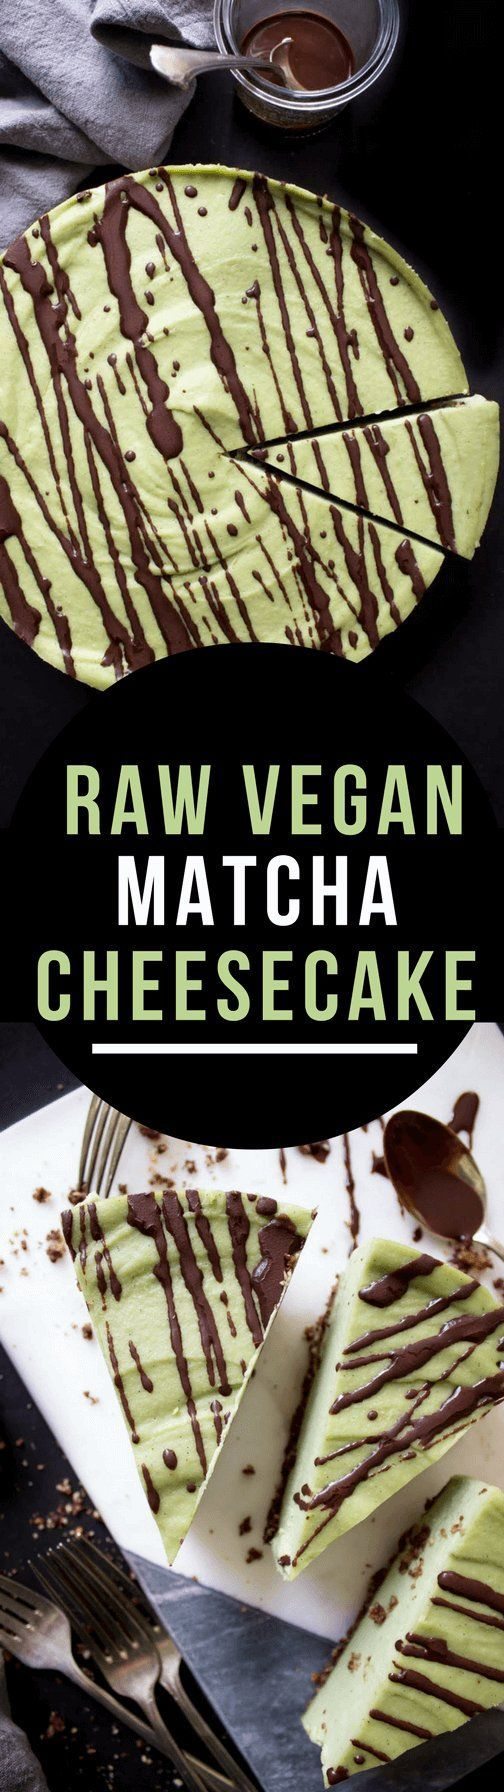 Decadent and creamy this Raw Vegan Matcha Cheesecake is also paleo friendly and has the exact same taste and texture as normal cheesecake!